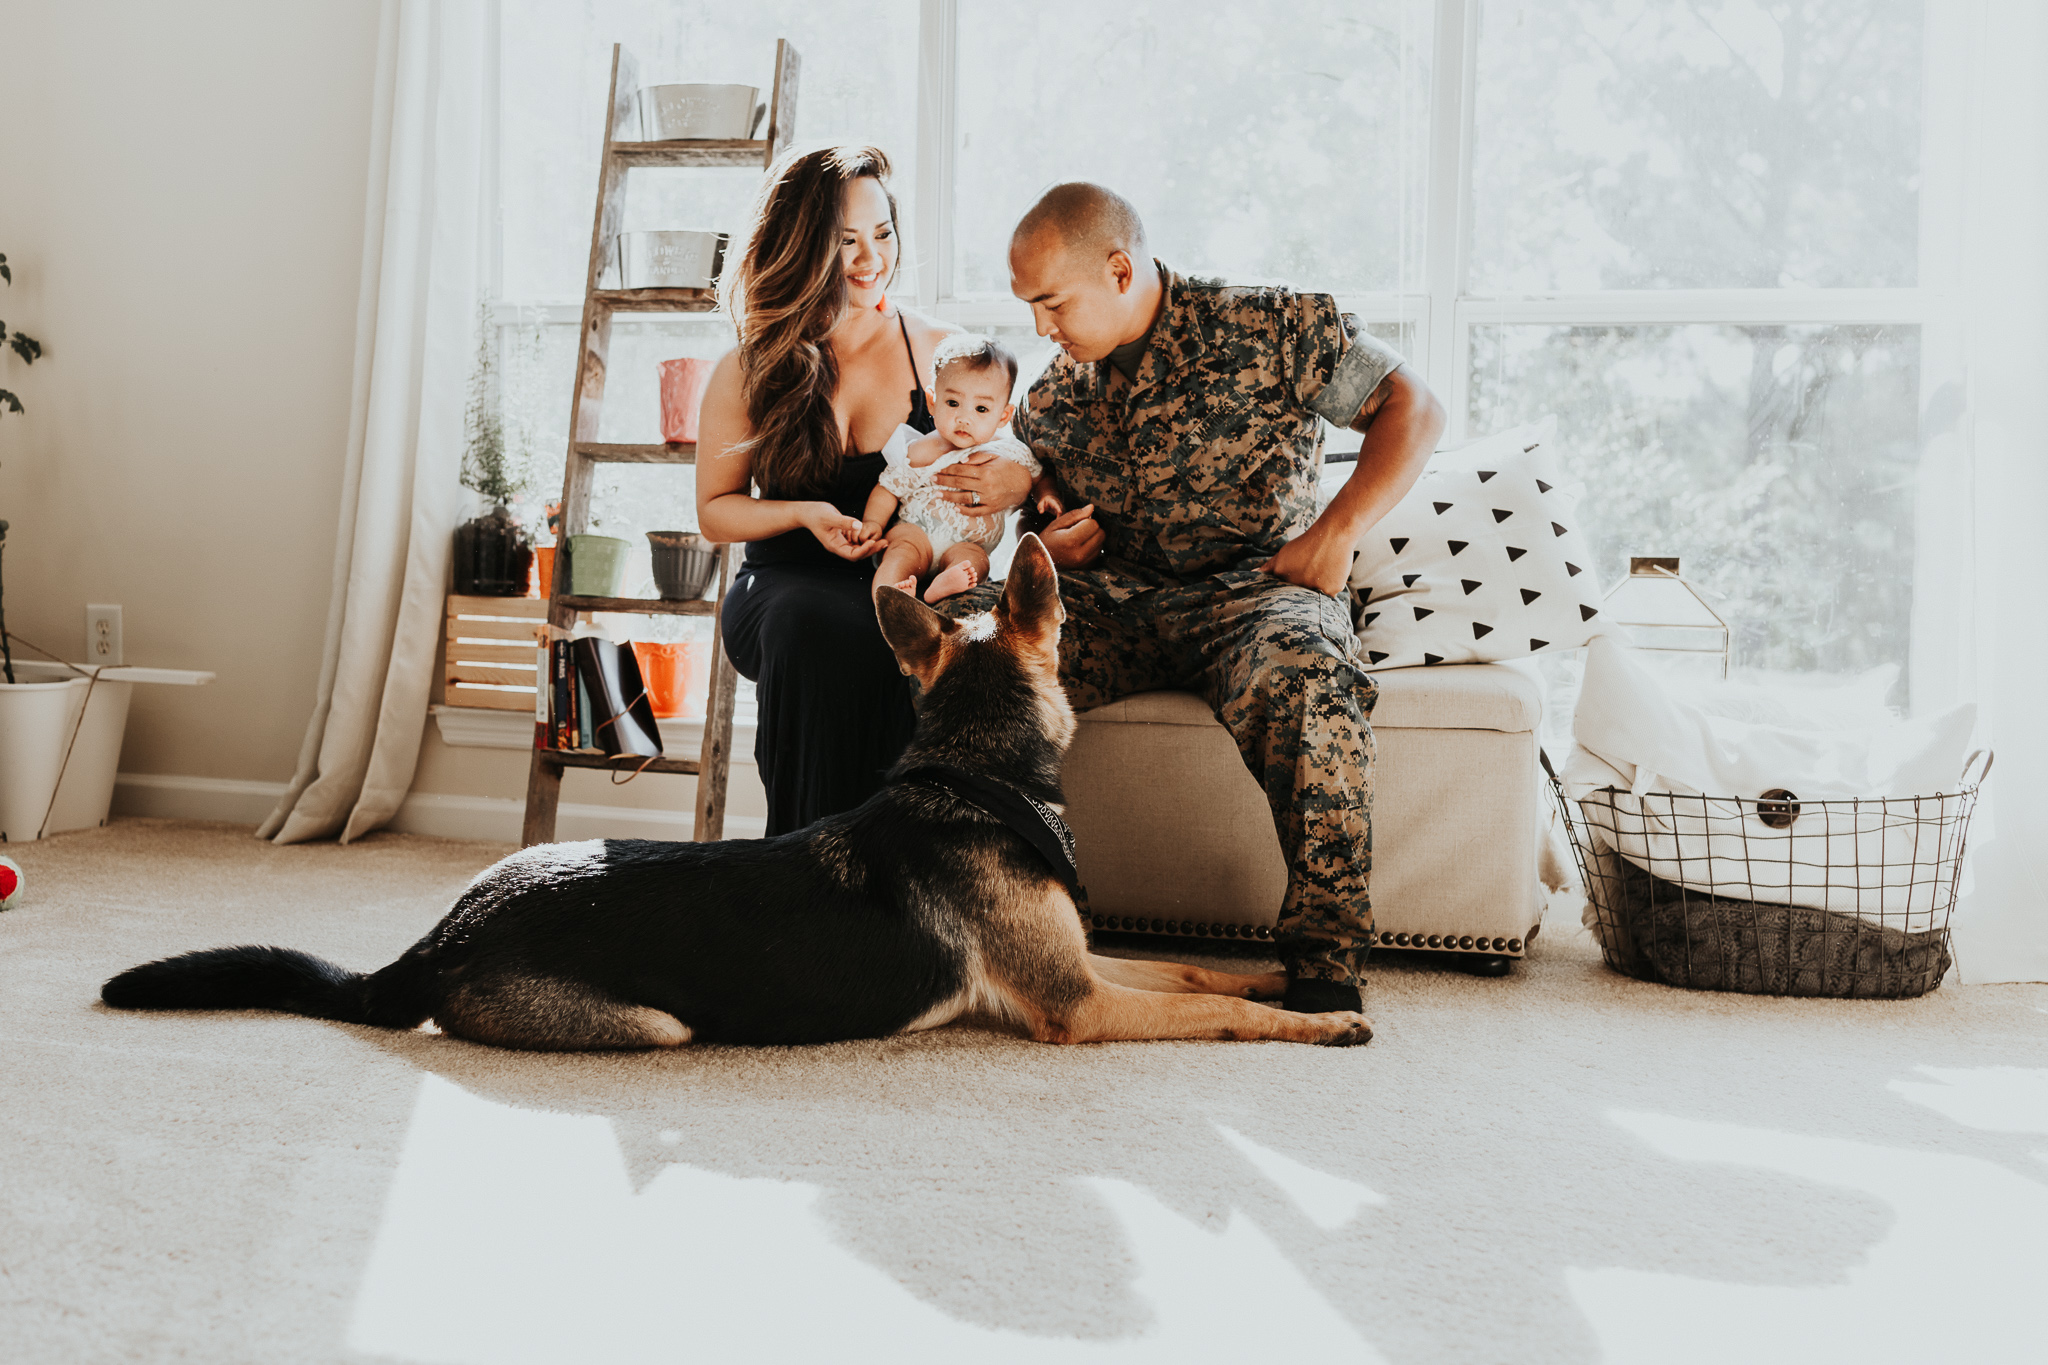 Brittany Martorella | Columbus, Georgia | Lifestyle, Engagement & Wedding Photographer